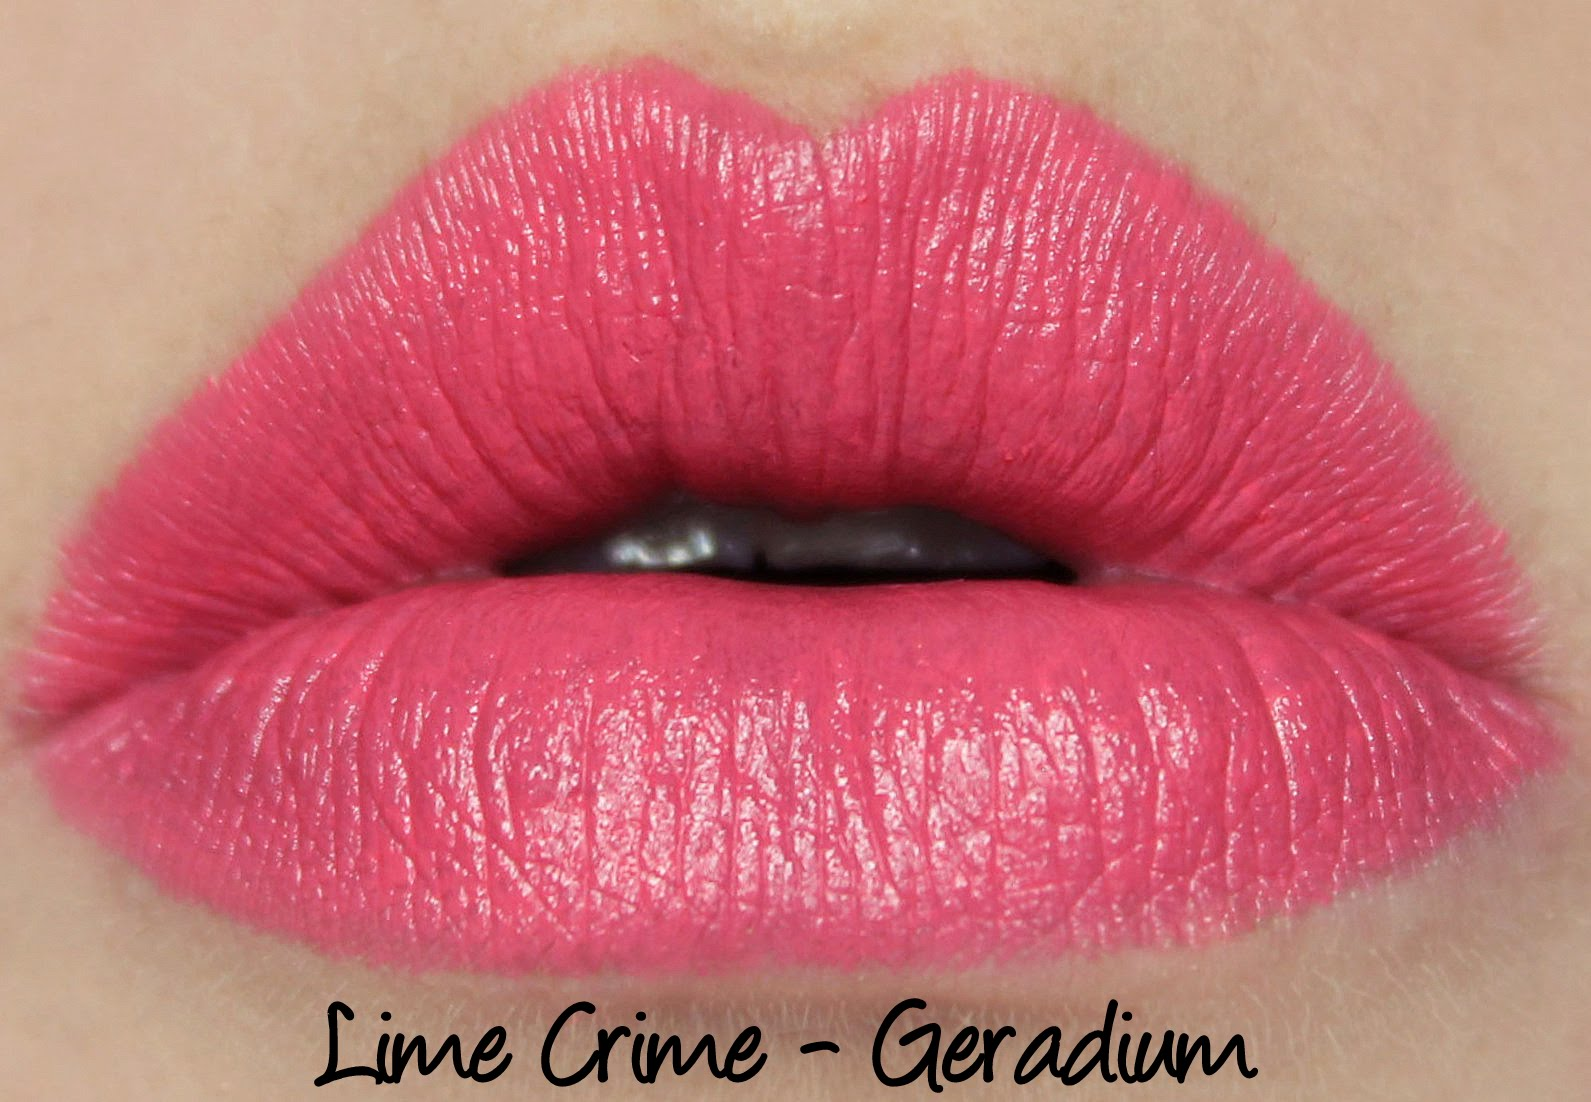 Lime Crime Geradium lipstick swatch